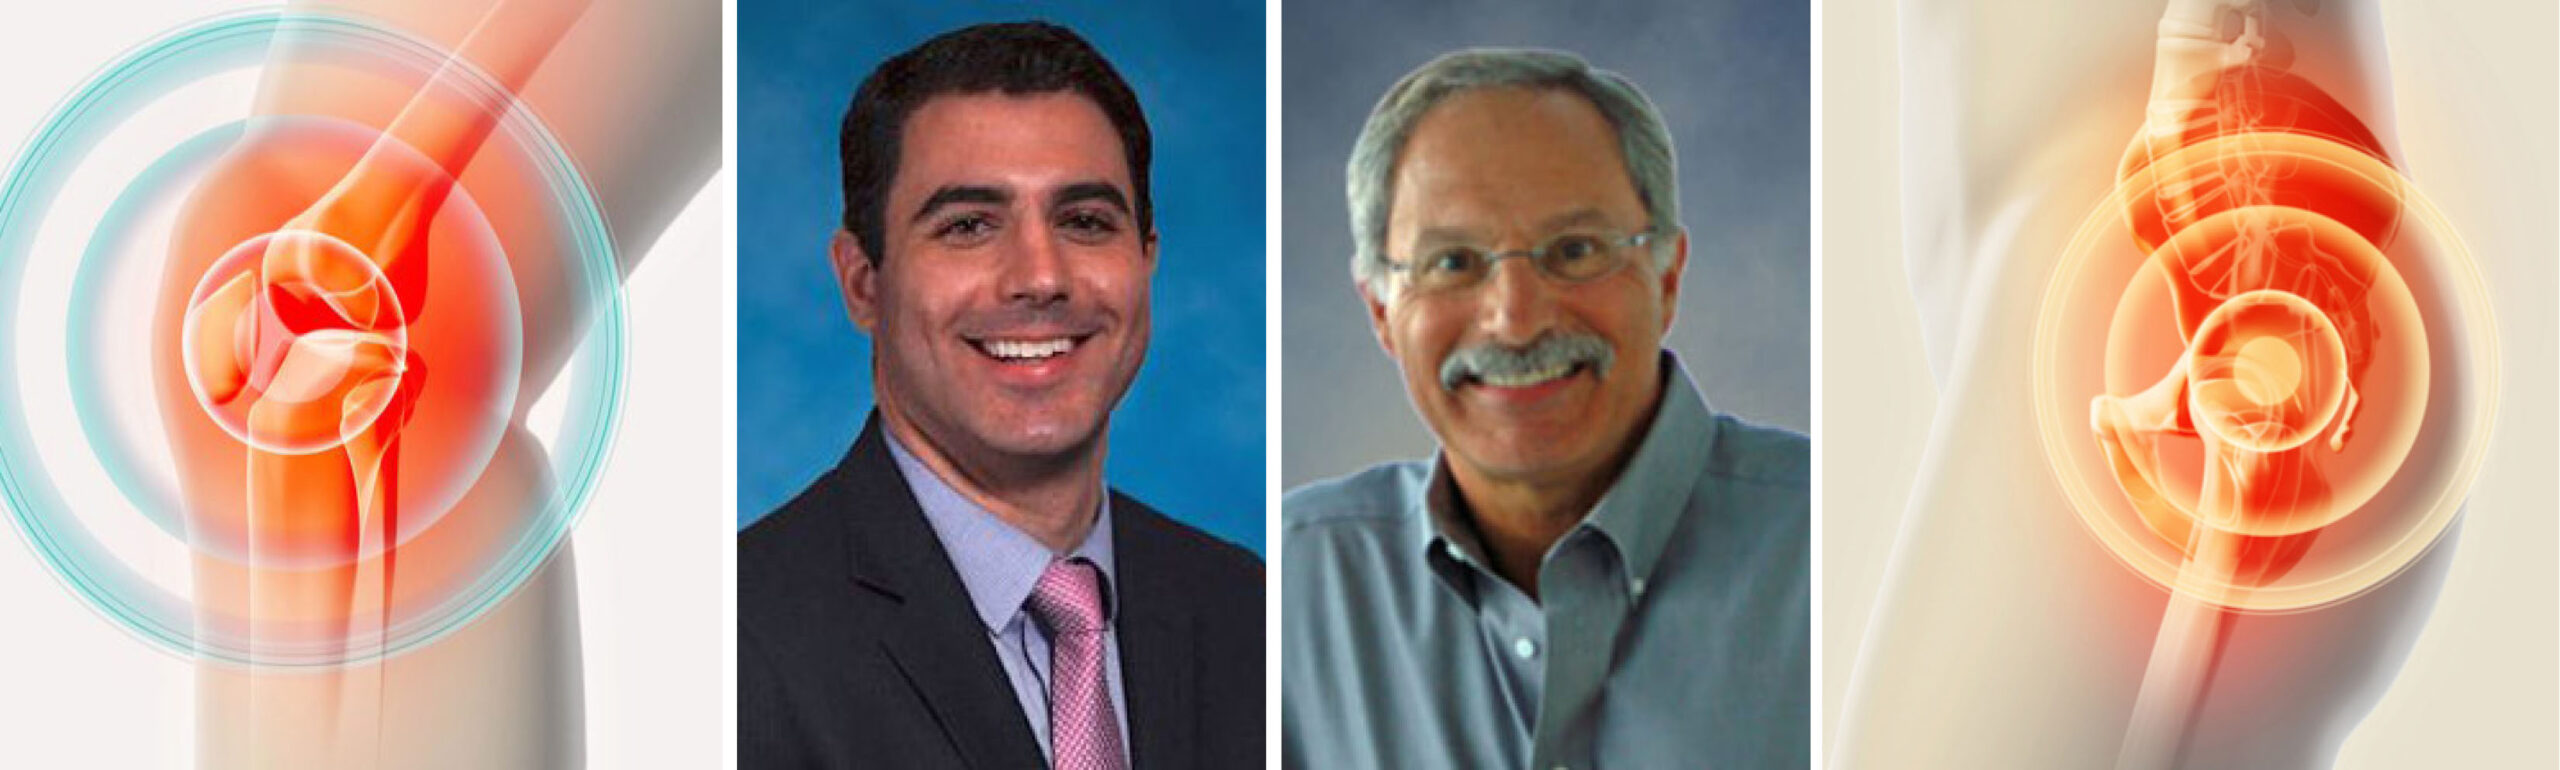 Matthew Russo, MD & Vincent Russo, MD – Orthopedic Surgeons is one of the best!